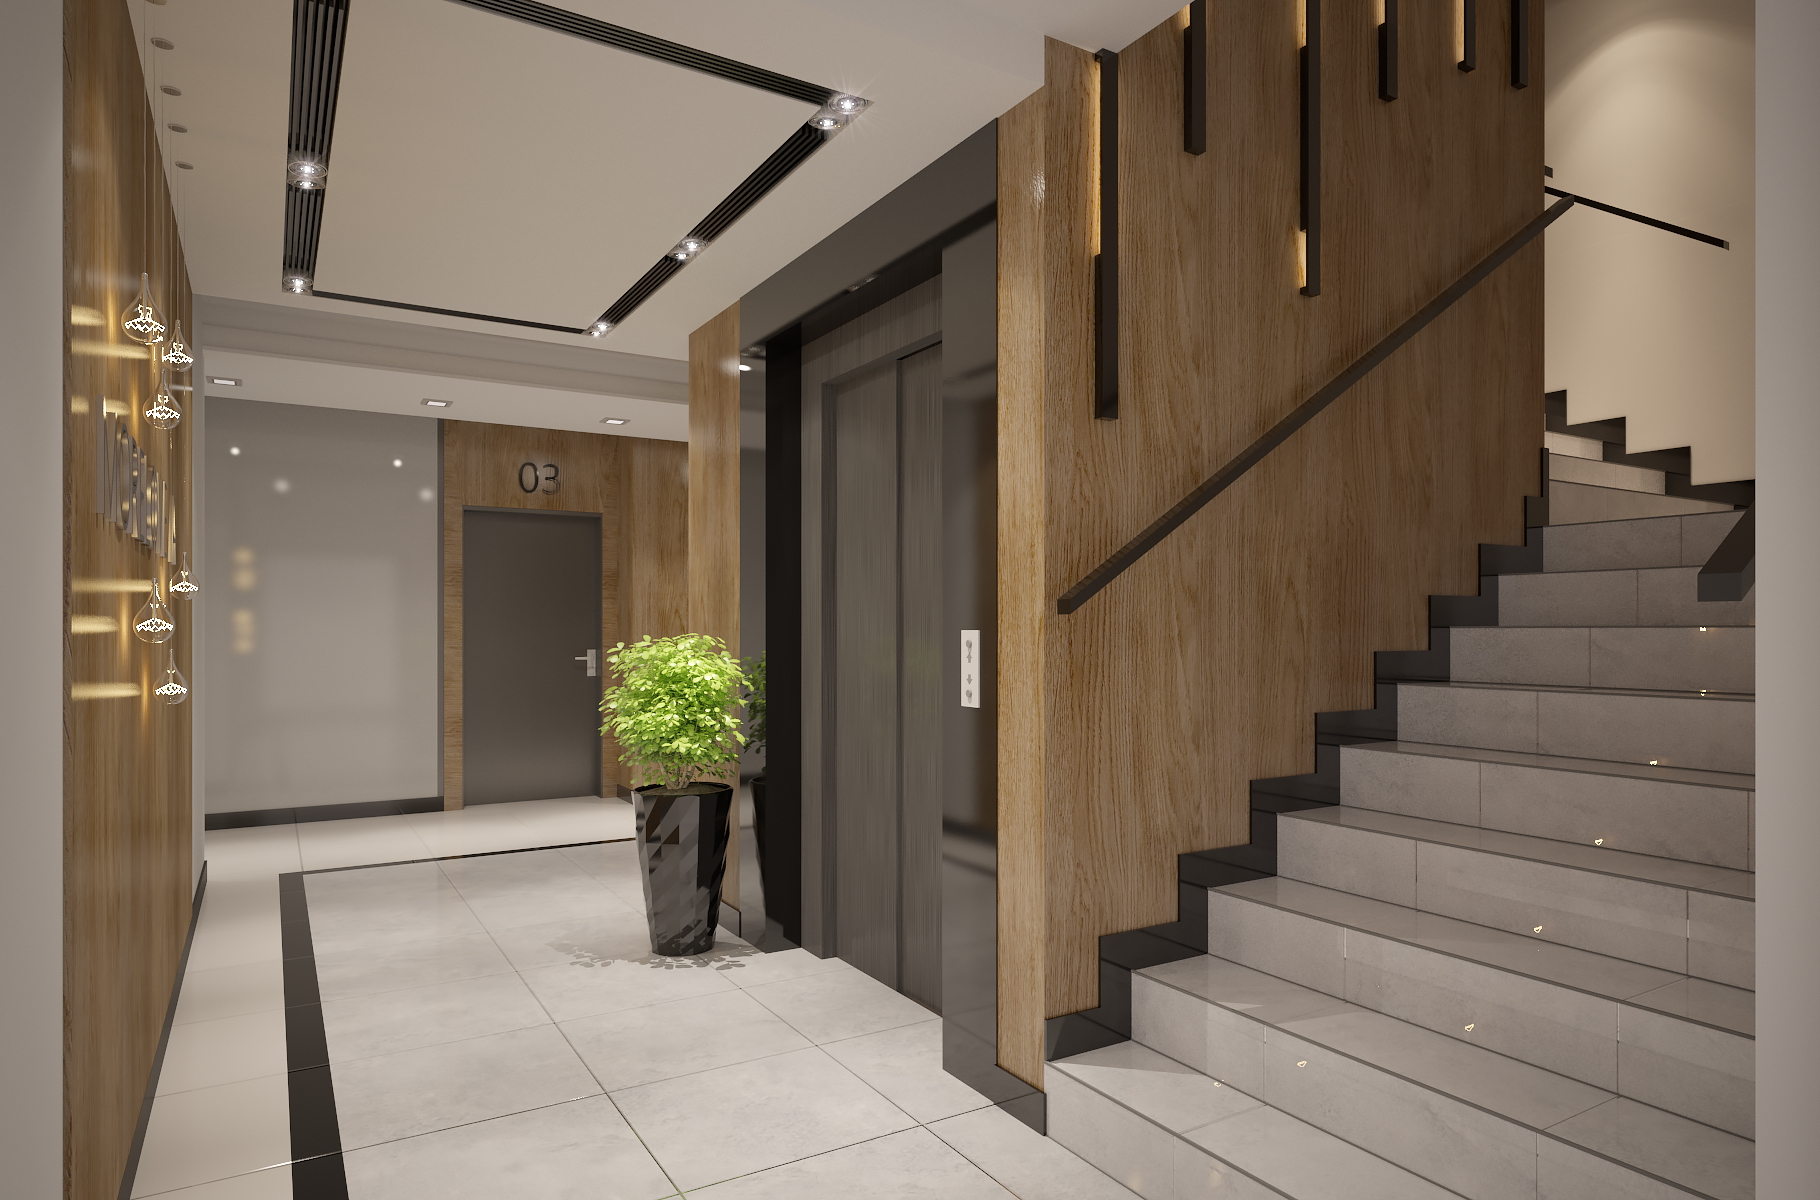 Apartments Building Entrance Hall Area Foyer Lobby With